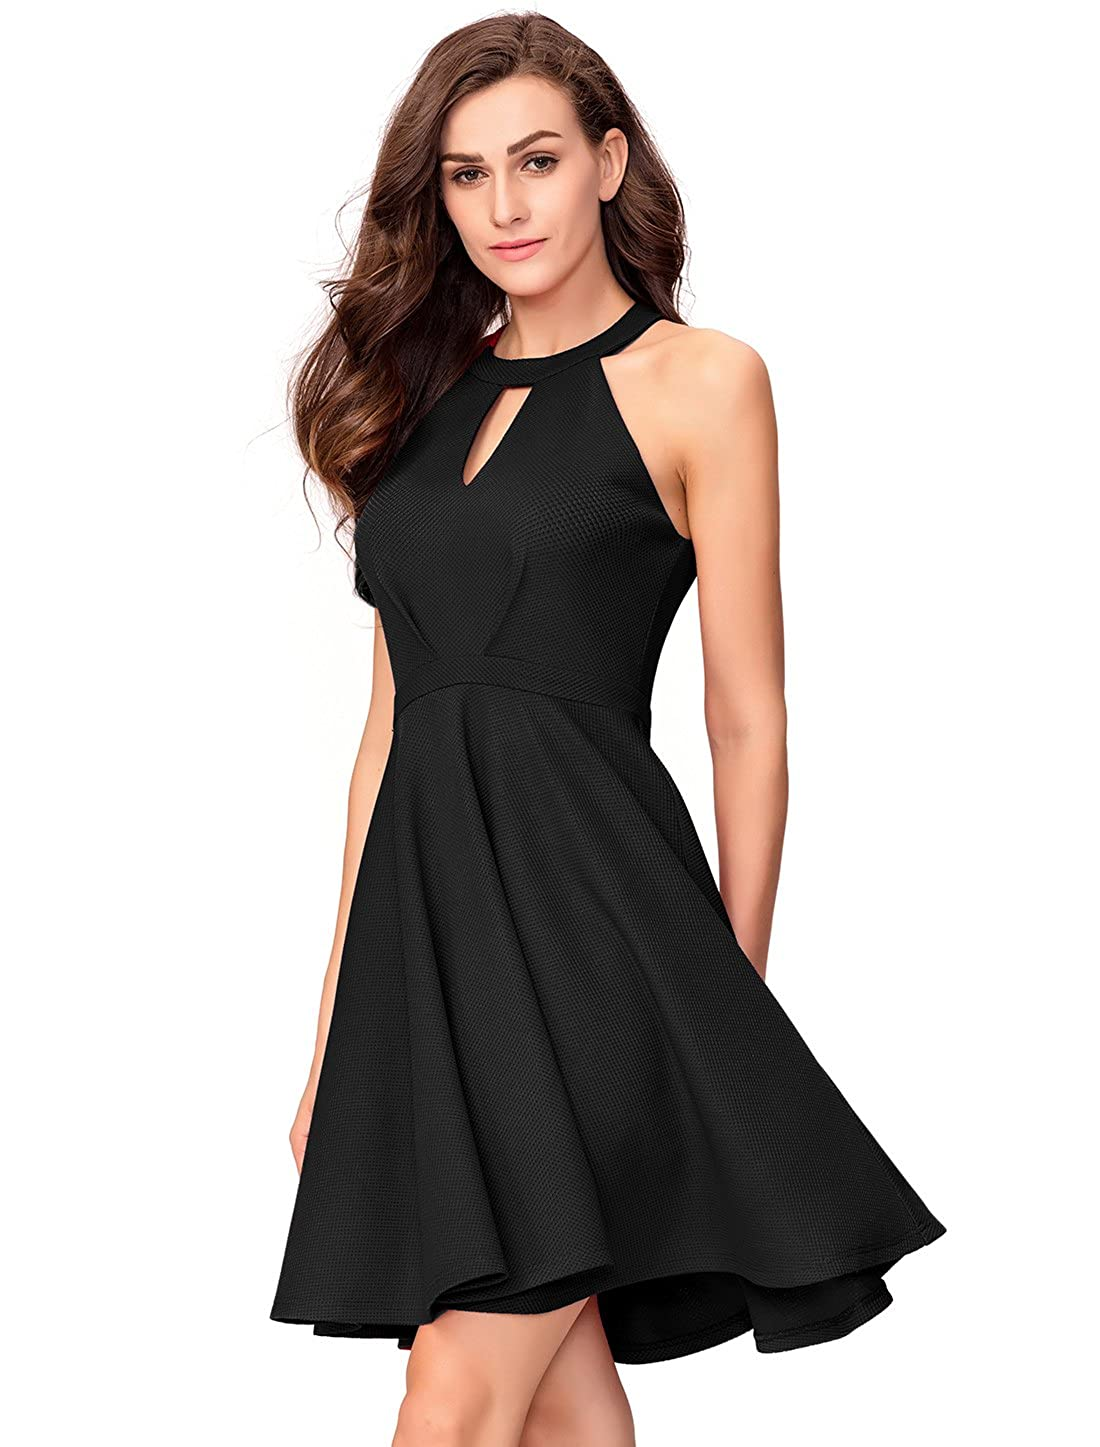 5aaf8f1b61 InsNova Women s Halter Skater A-Line Cocktail Dress Keyhole Neck Backless  at Amazon Women s Clothing store